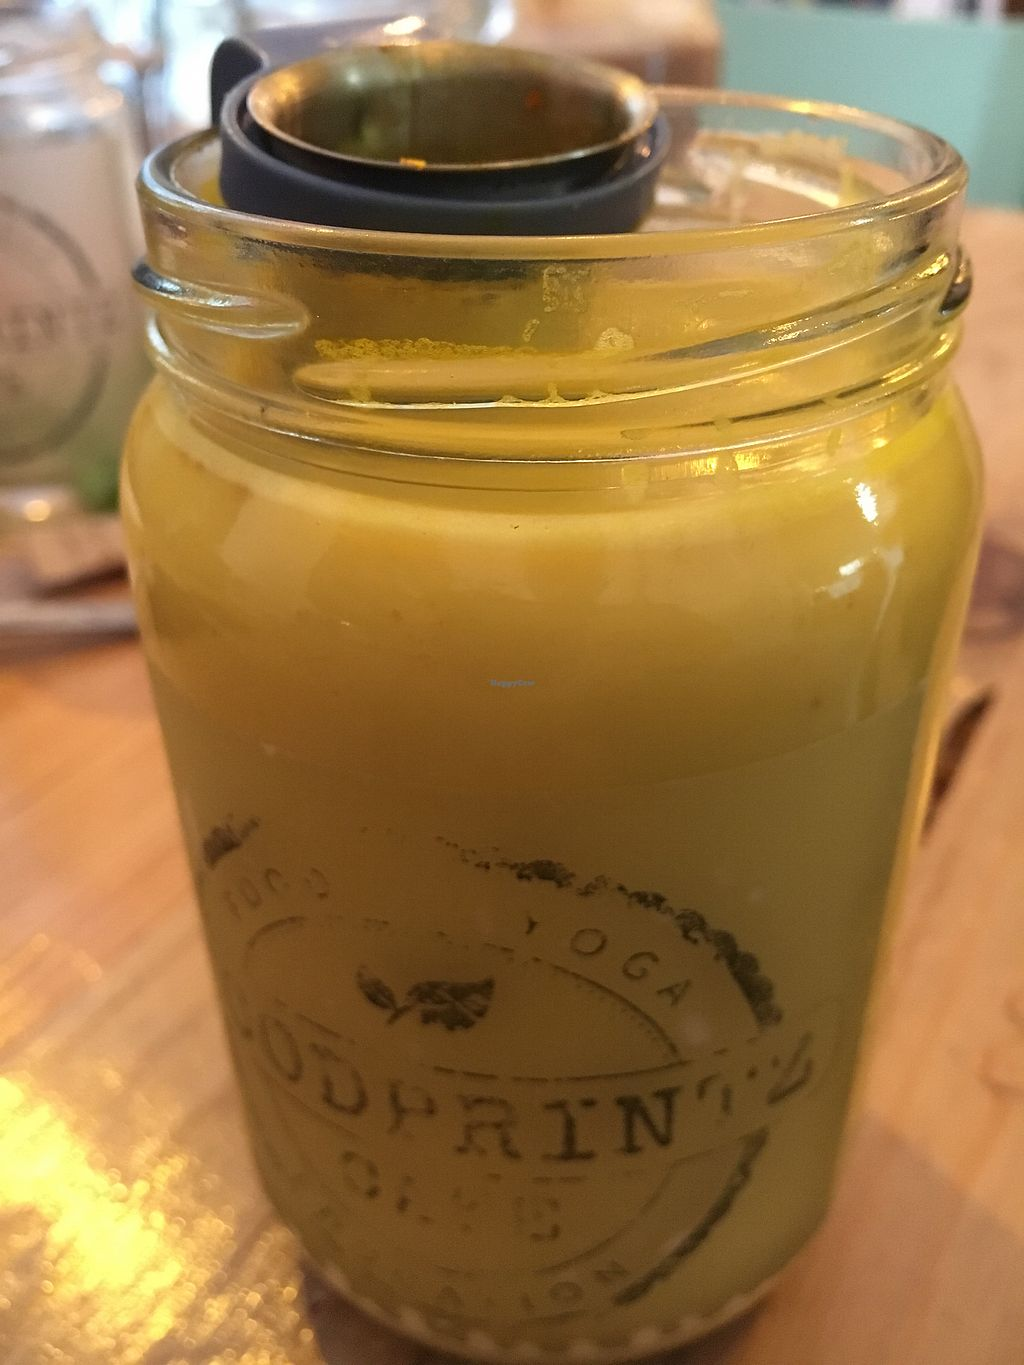 """Photo of Foodprintz Cafe  by <a href=""""/members/profile/hack_man"""">hack_man</a> <br/>Turmeric soya latte  <br/> September 8, 2017  - <a href='/contact/abuse/image/81313/302147'>Report</a>"""